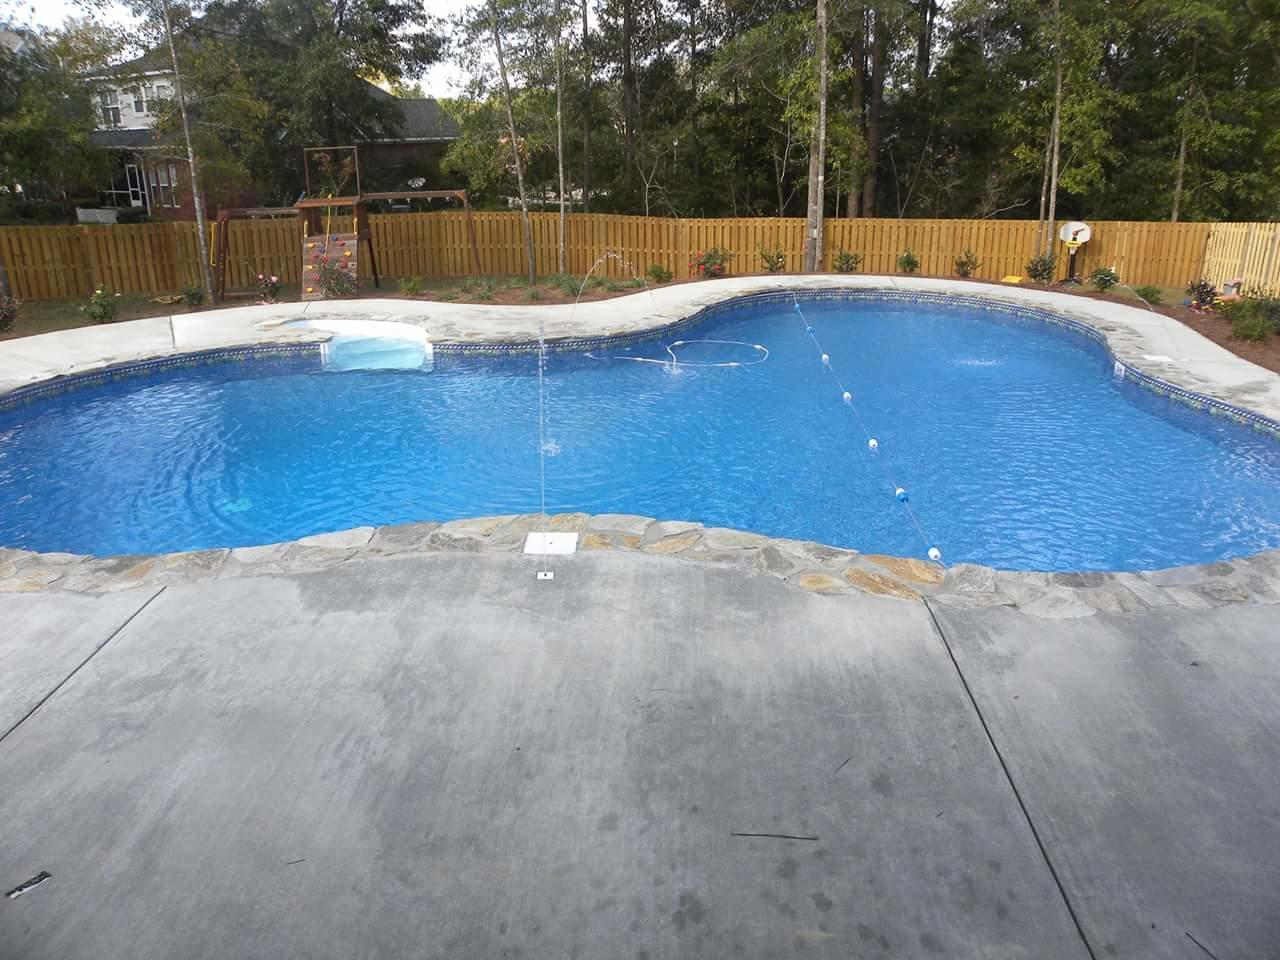 Mag Nificent Pools Inc In Mobile Al 36695